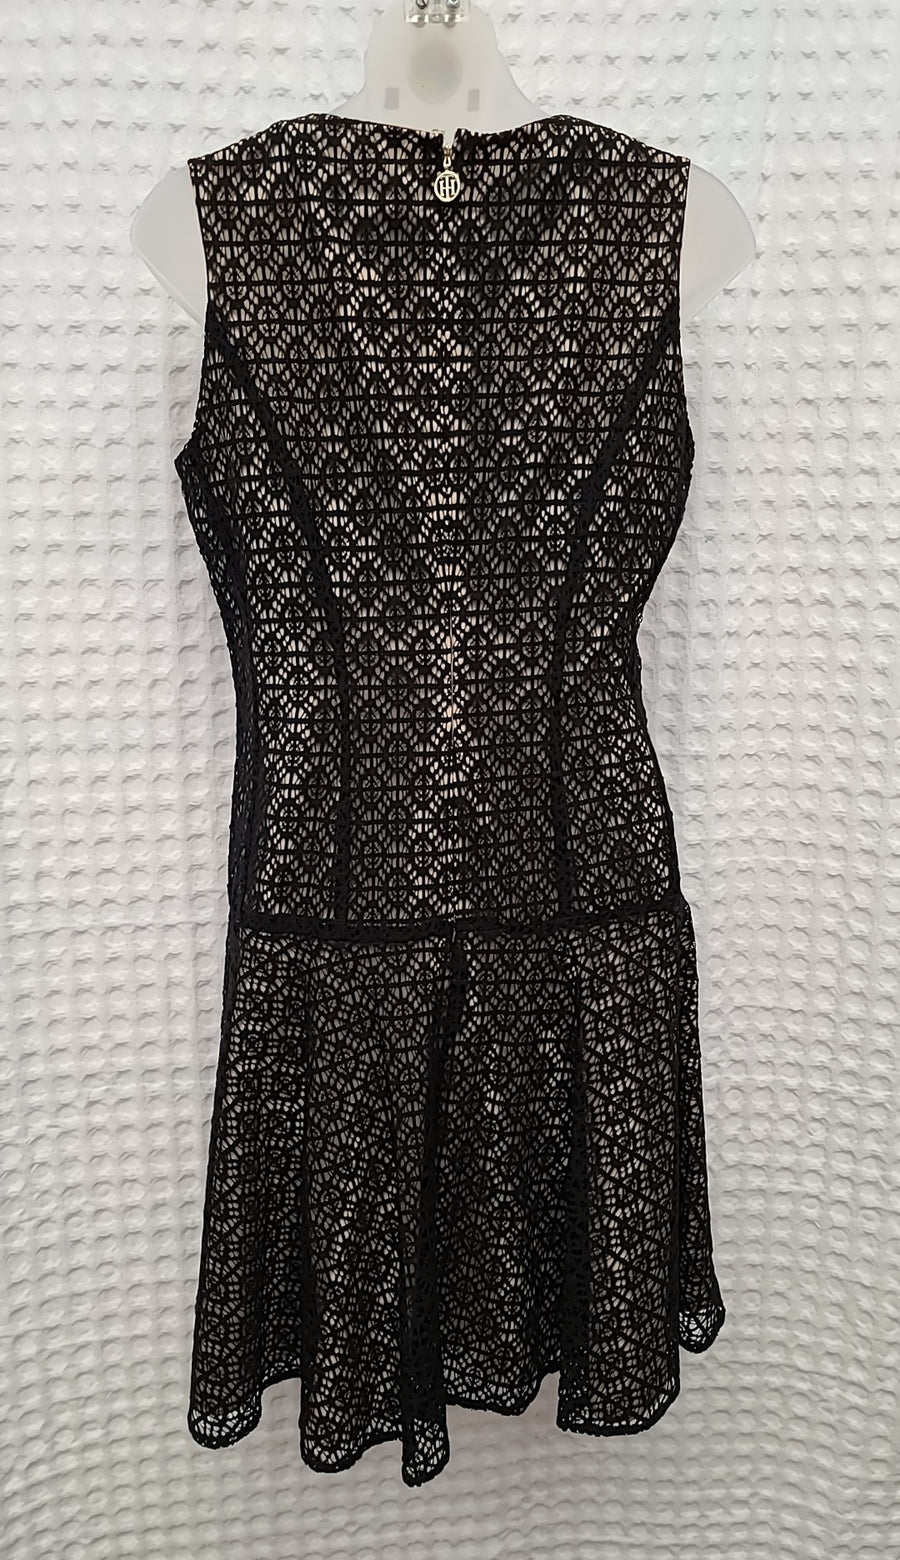 TOMMY HILFIGER Size 6 DRESS